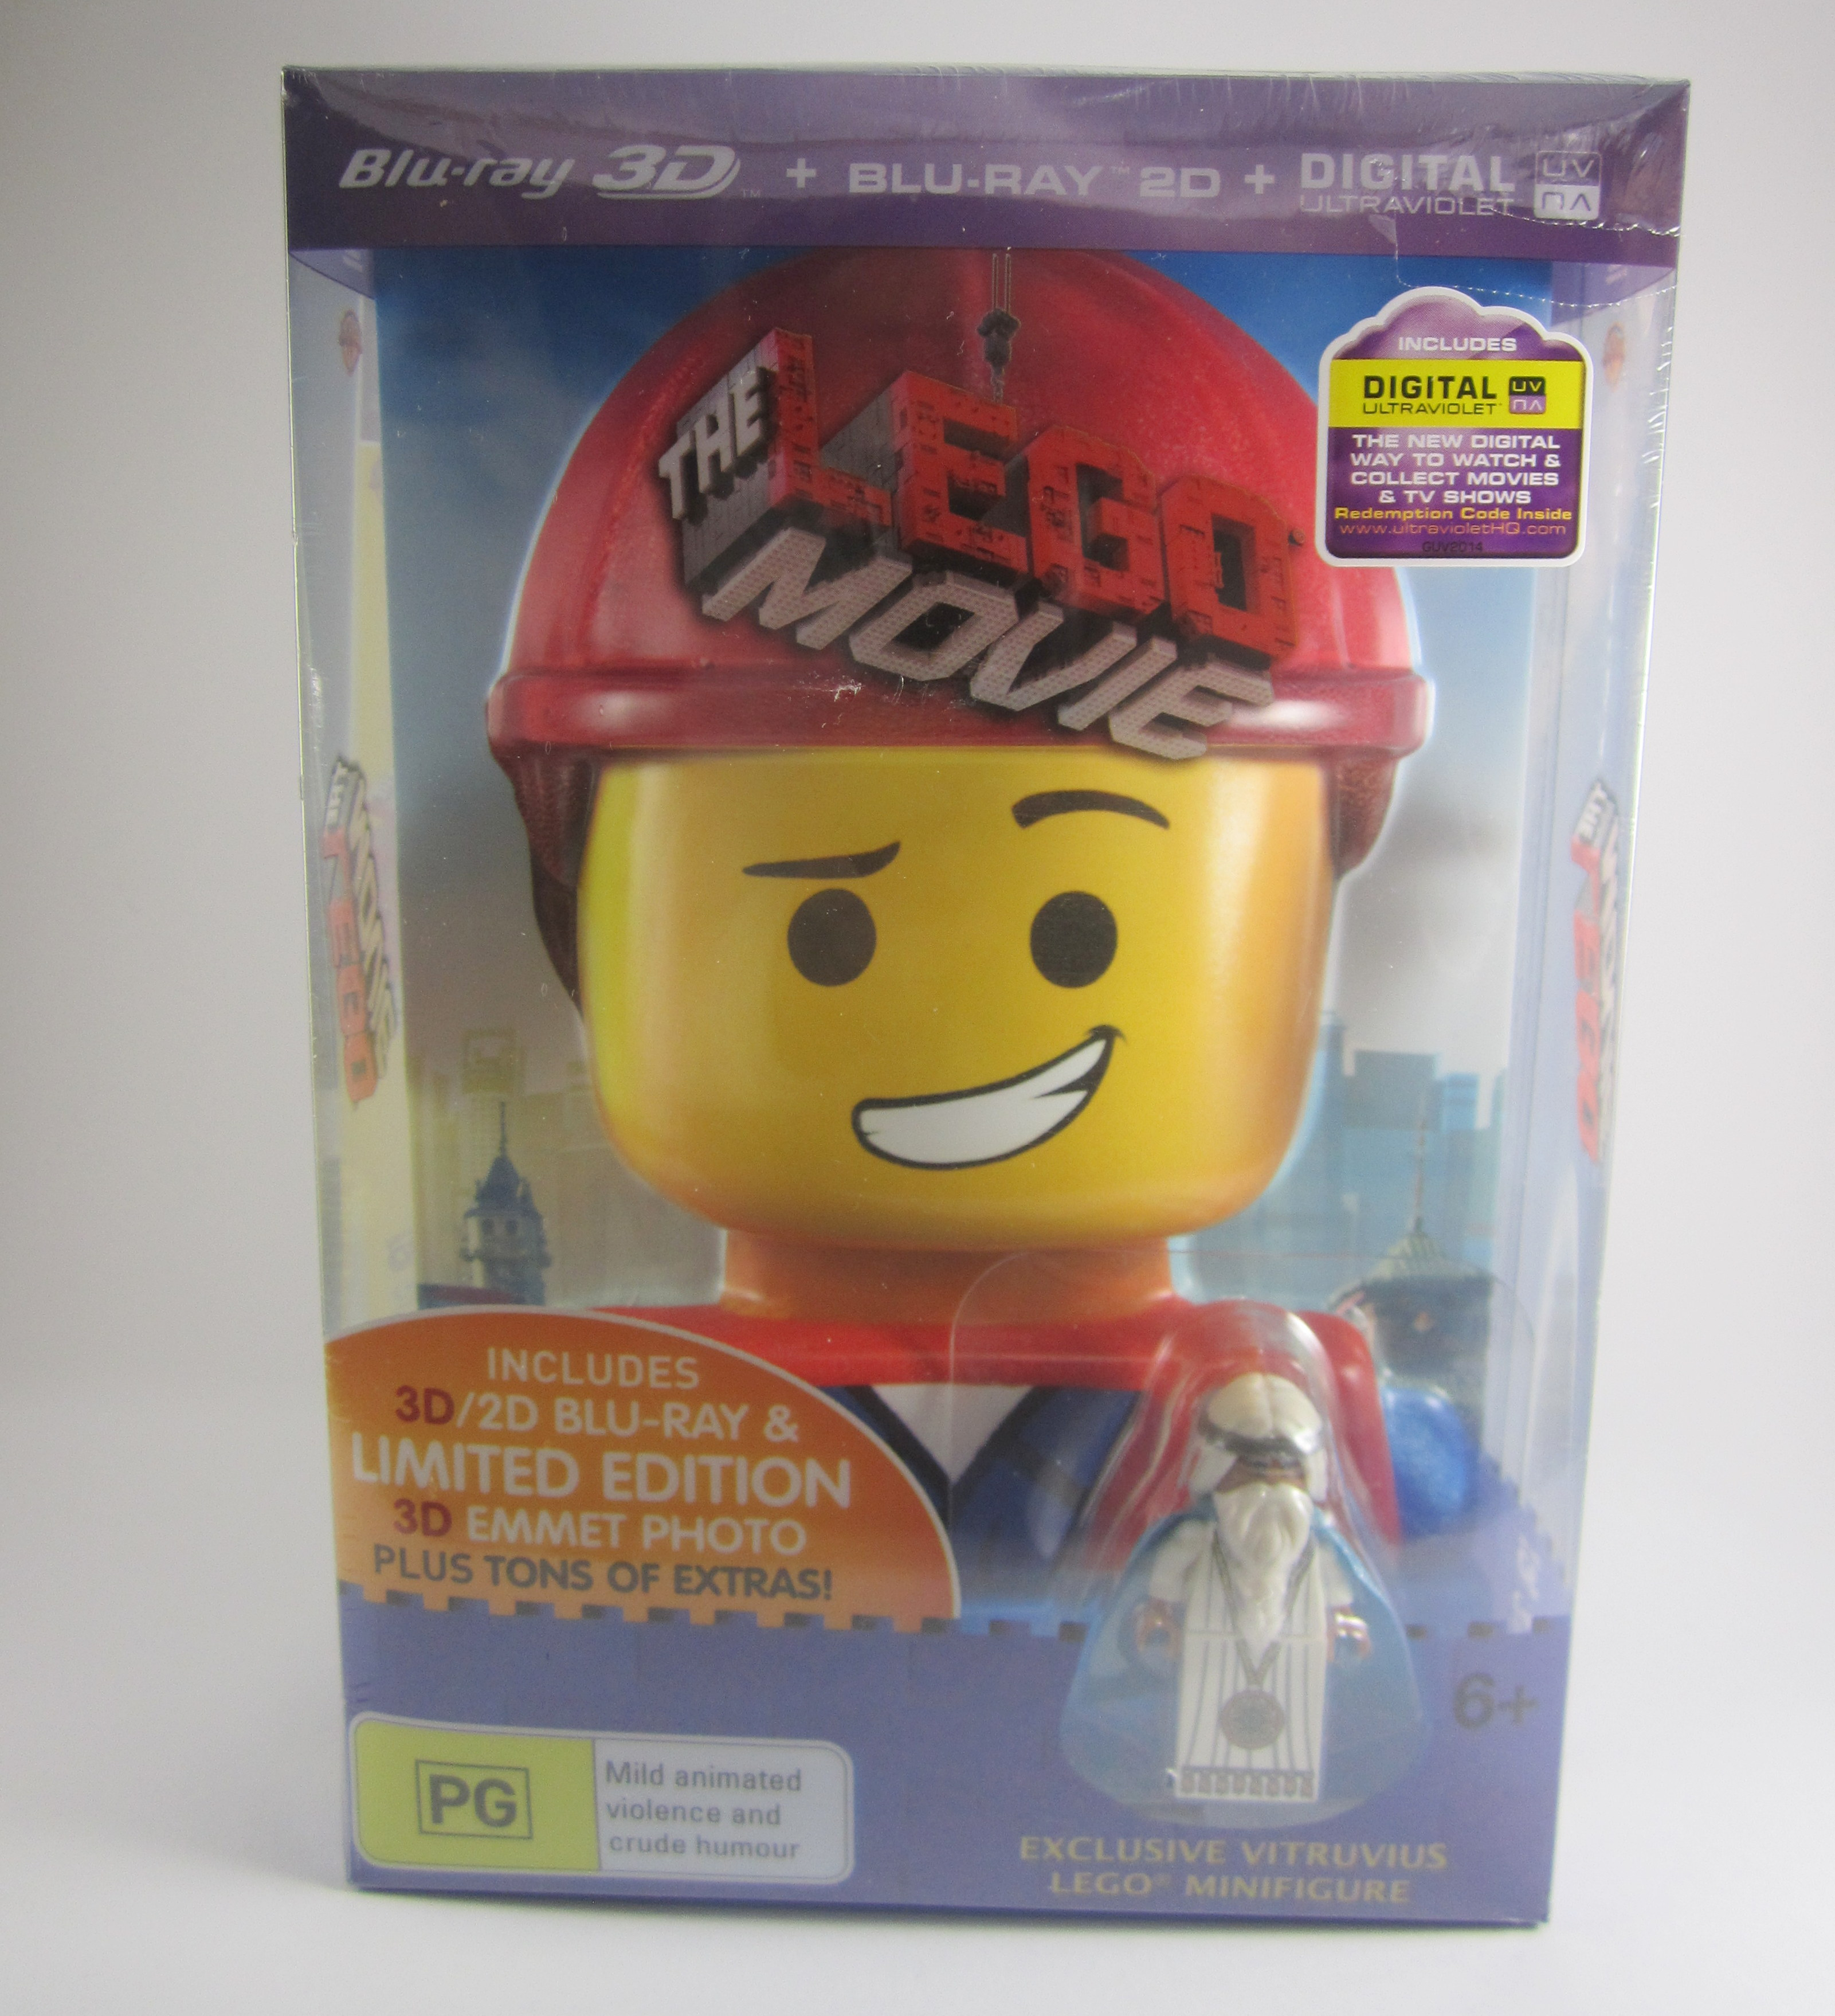 Special edition the lego movie dvds for sale | ebay.